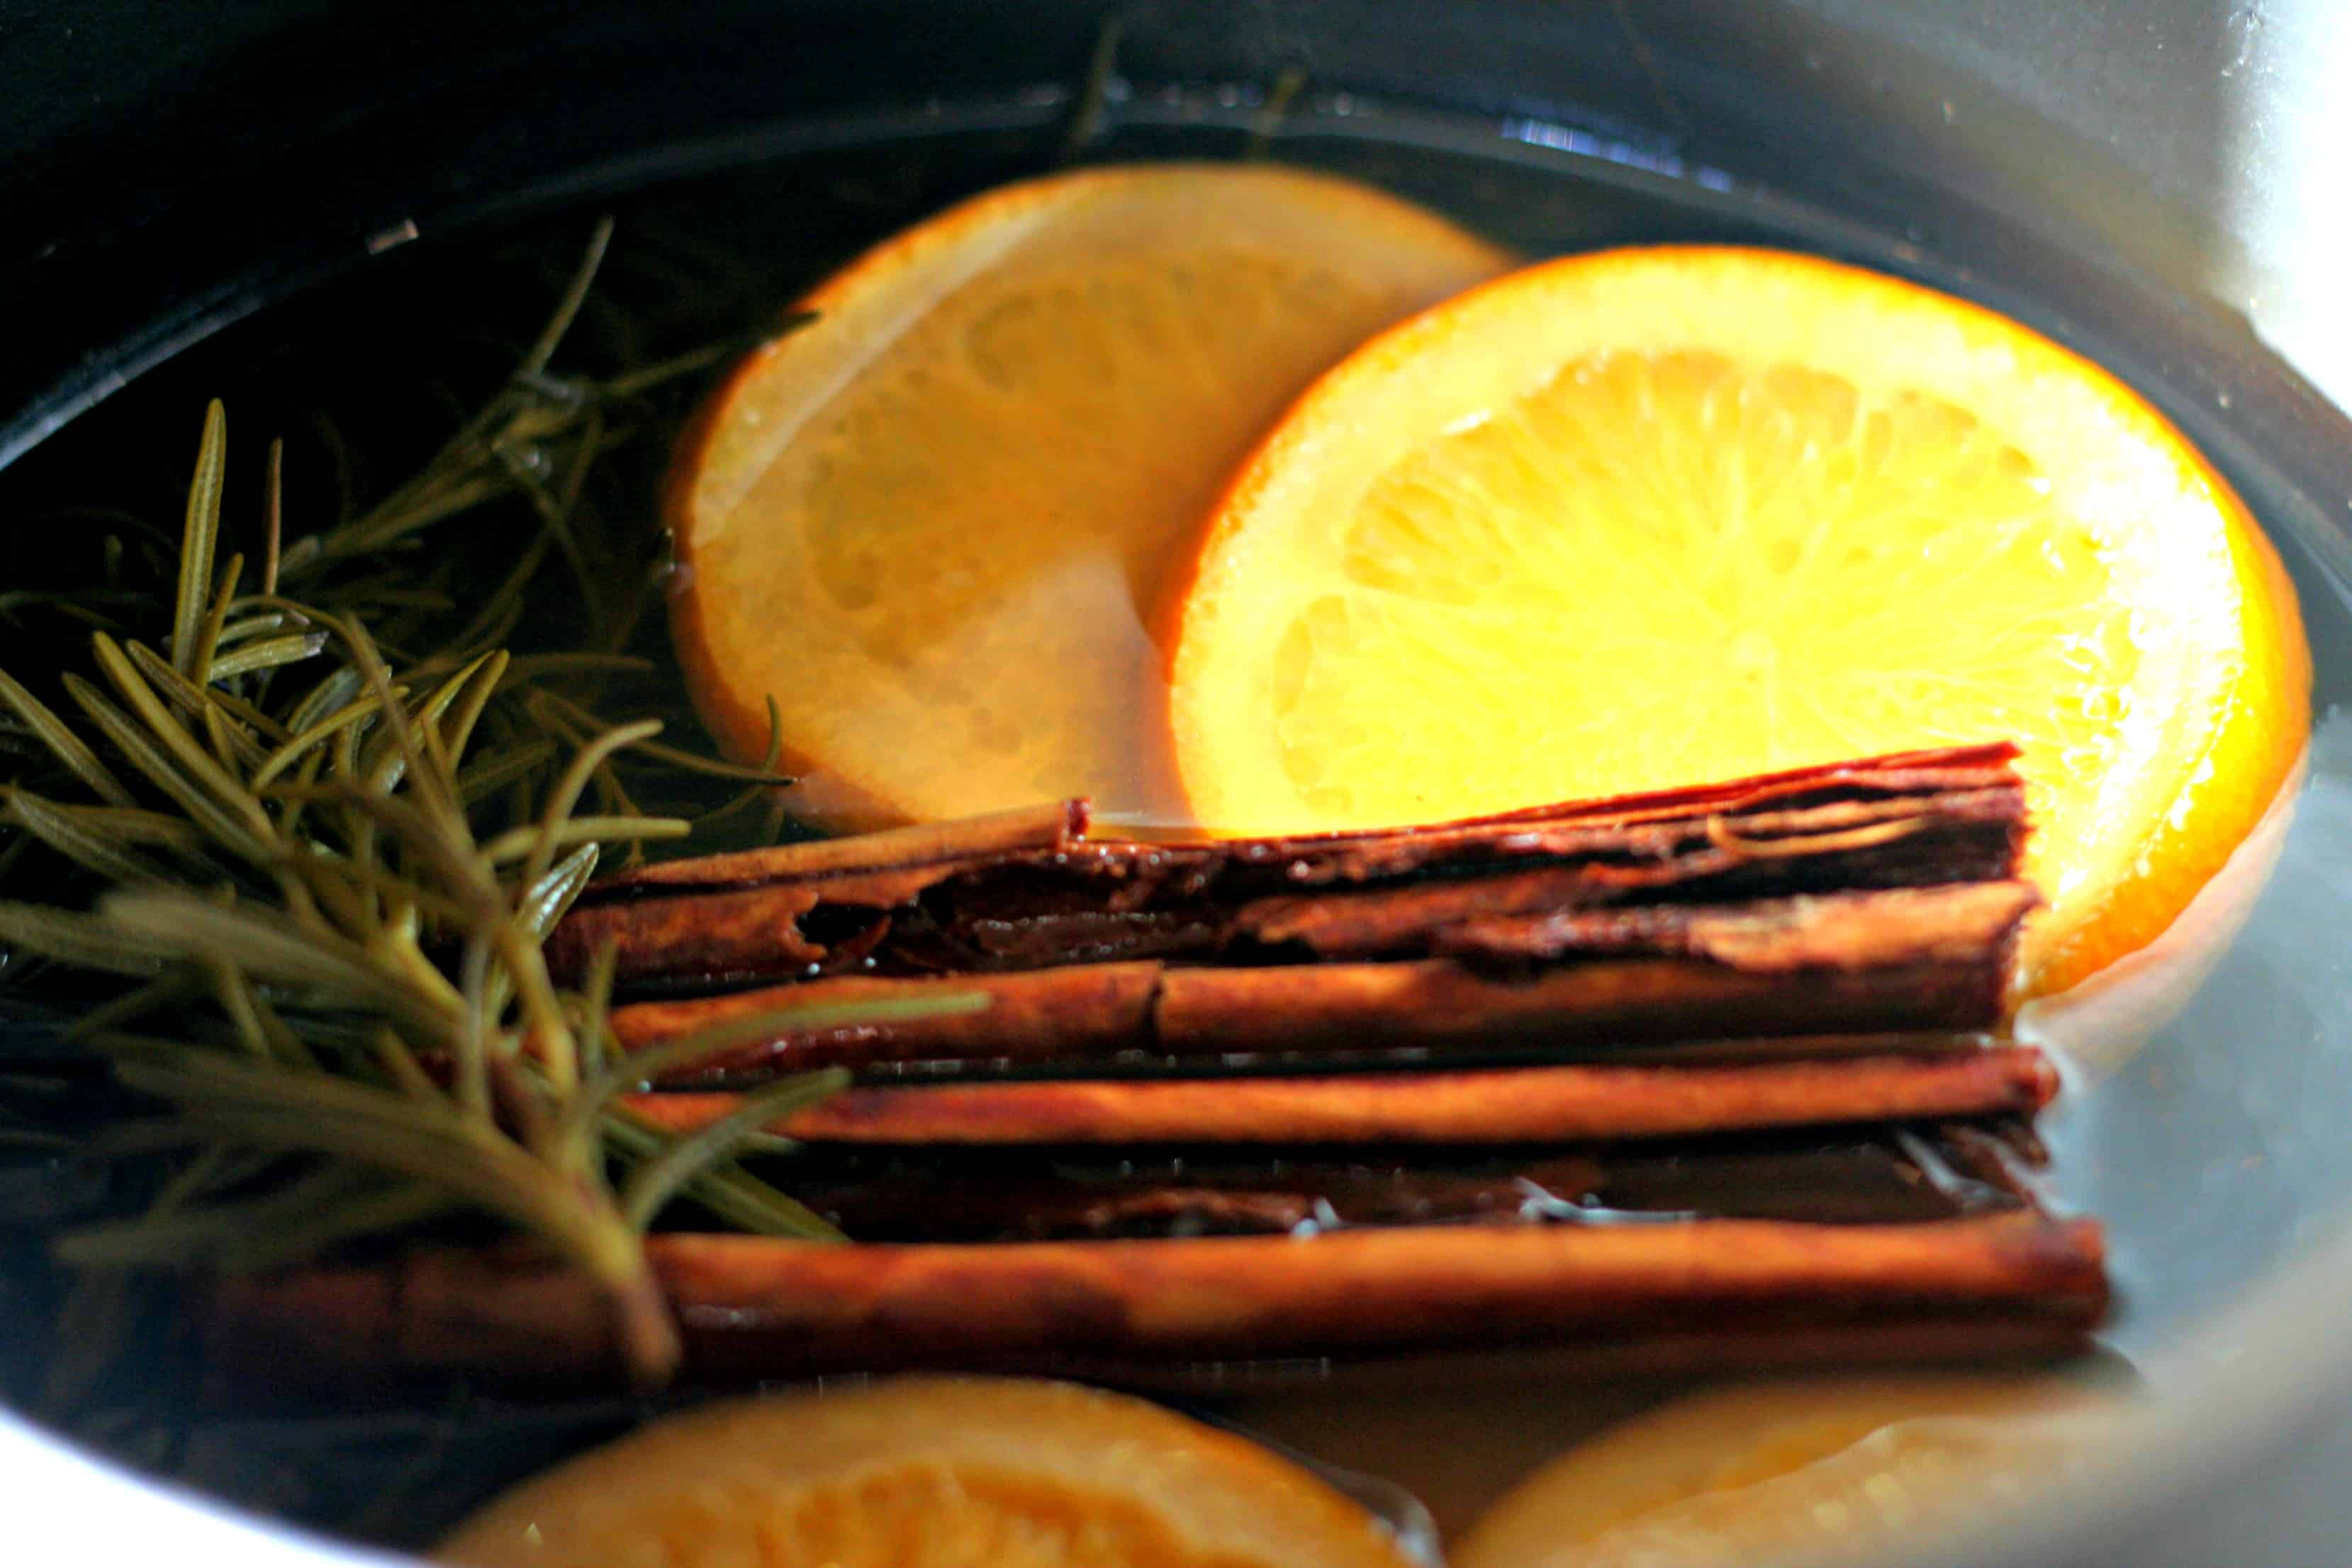 Set To Simmer – improve house smell